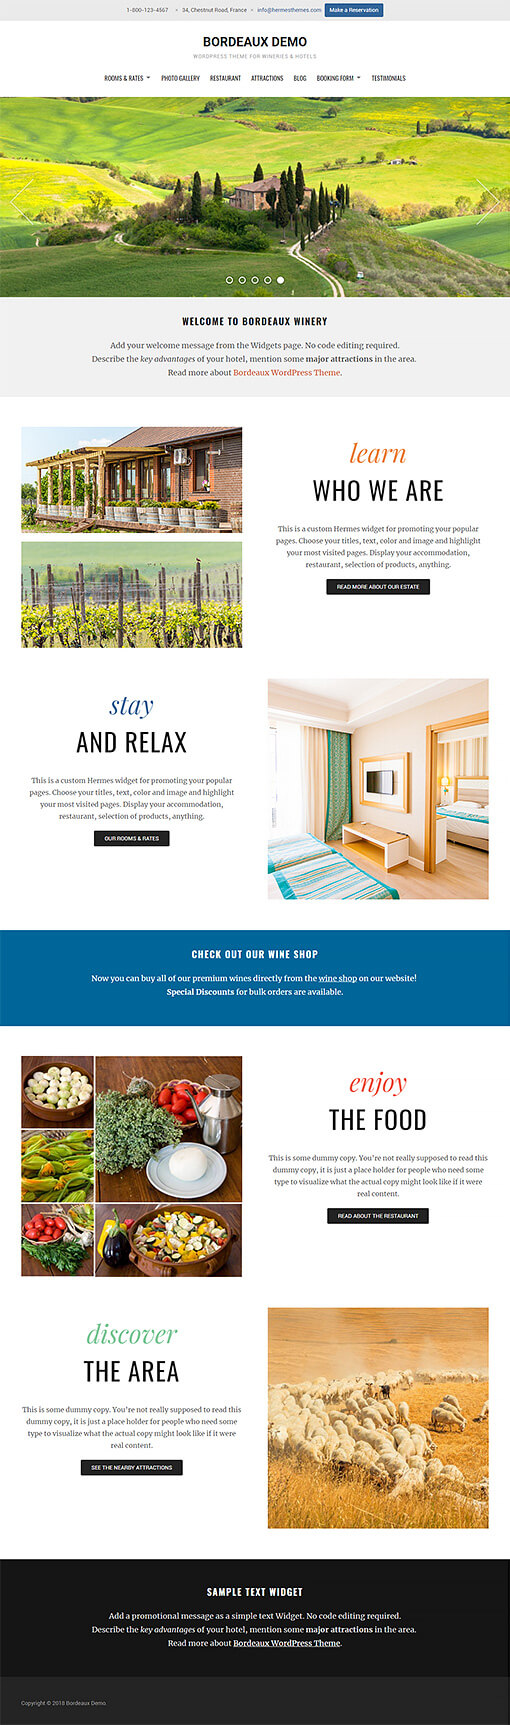 Bordeaux Hotel WordPress Theme Preview: Full Screenshot of Homepage